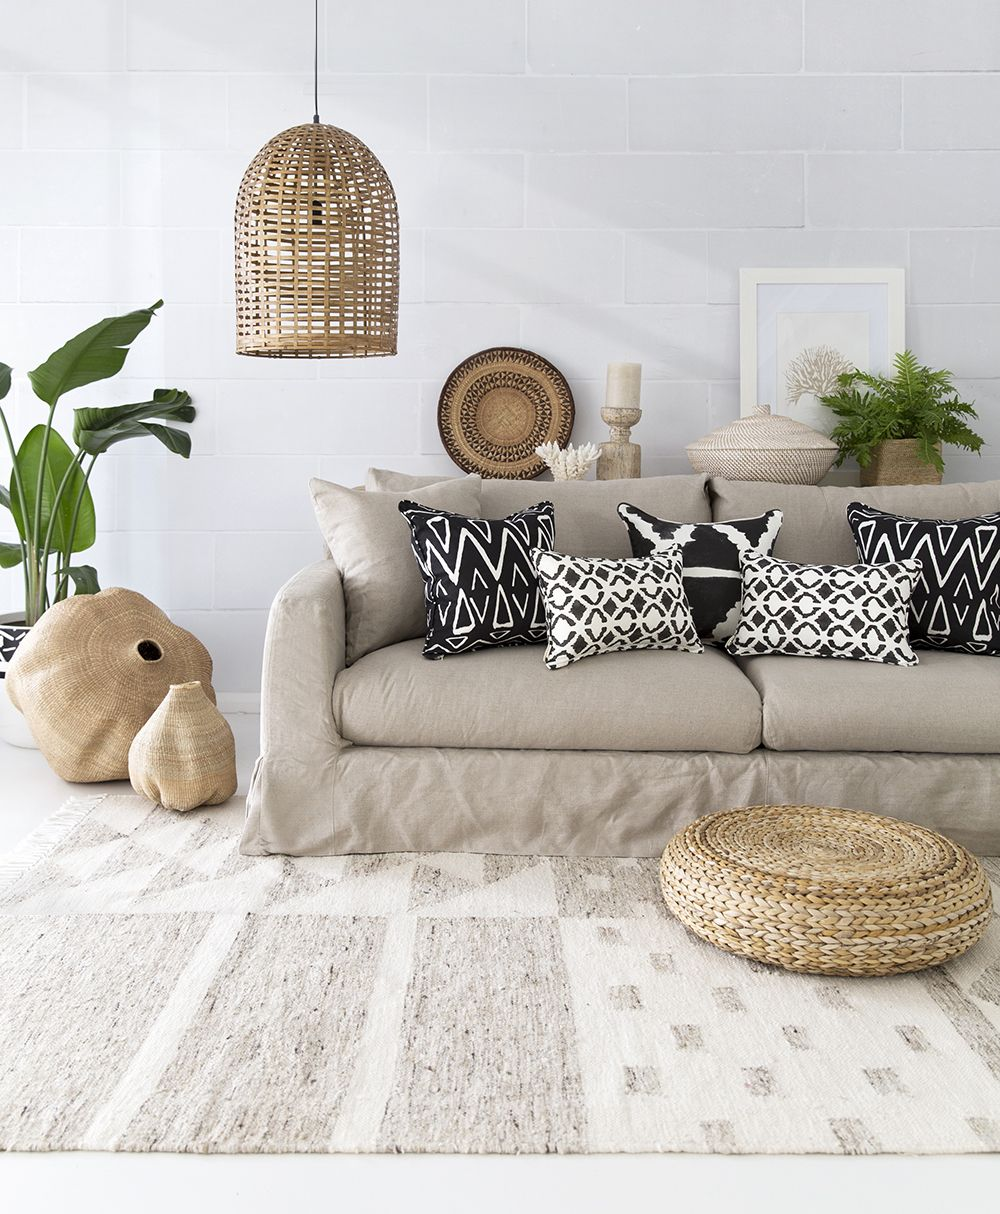 21 African Decorating Ideas For Modern Homes: Josie And June Australian Made